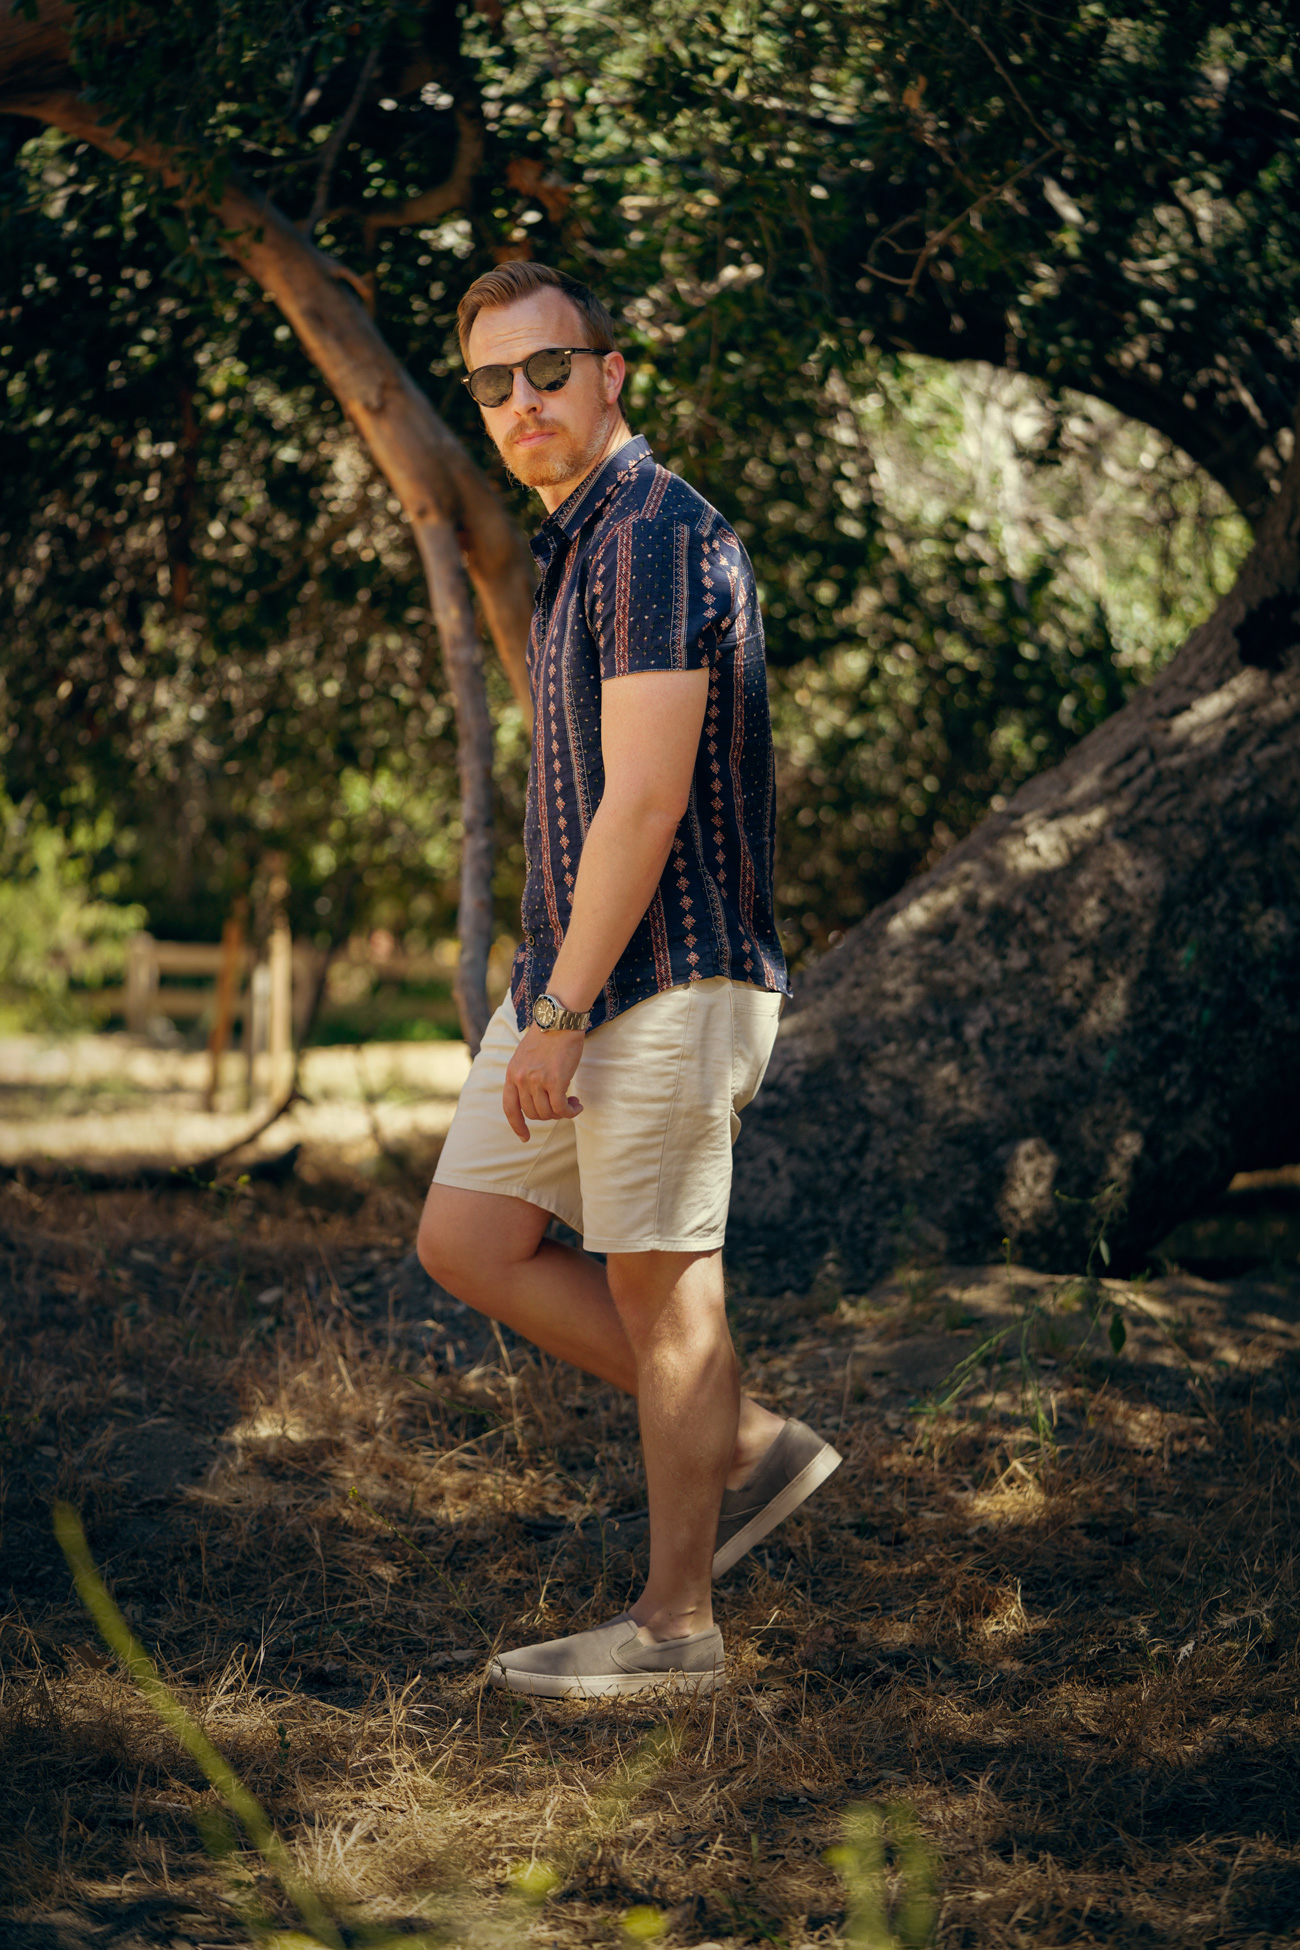 short sleeve floral shirt with white shorts and sneakers - mens summer outfit idea